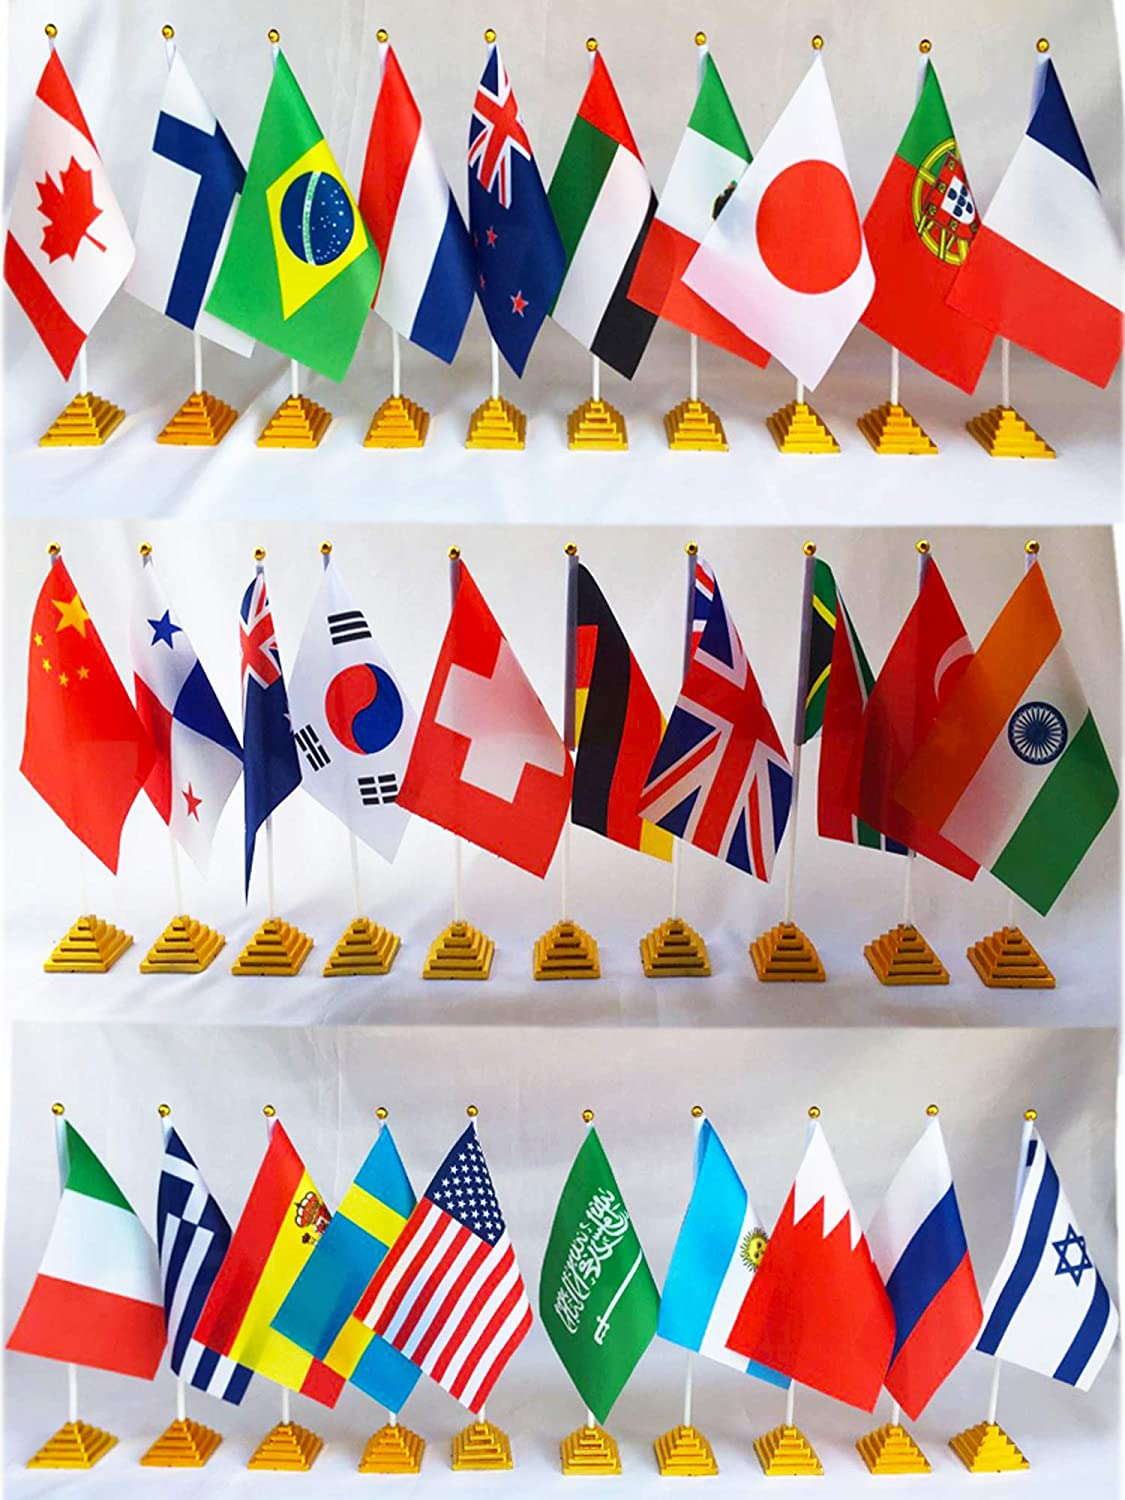 """30 Countries Desk Flags Pack International Table Flag Office Flag Stand-8.2 x 5.5 Inches Mini Desktop Flag with 11.8"""" White Pole with Golden Top-Fade Resistant - Golden Pyramid Stand Bases Included"""